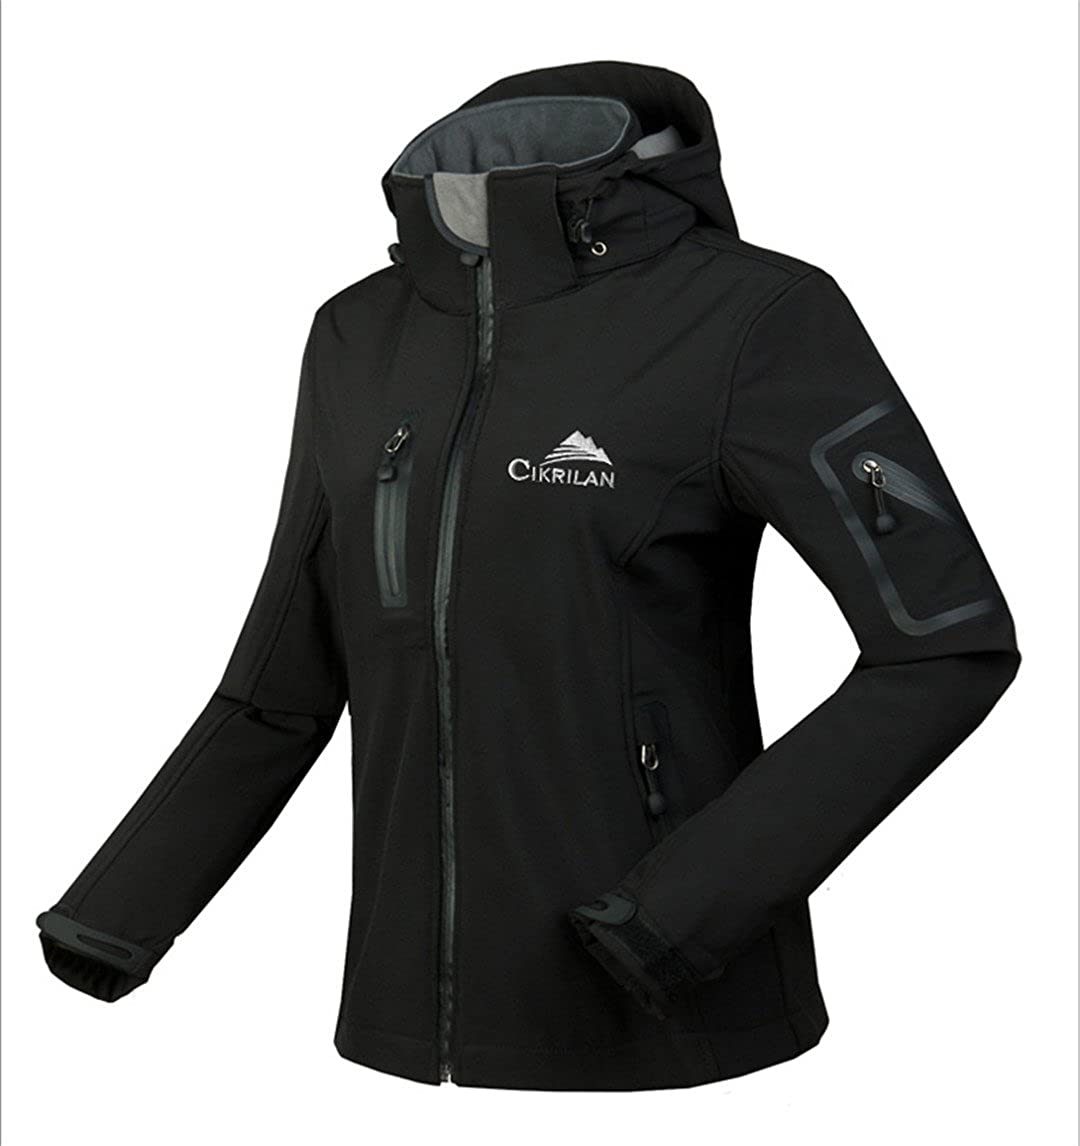 Amazon.com: Winter Water Waterproof Breathable Softshell ...